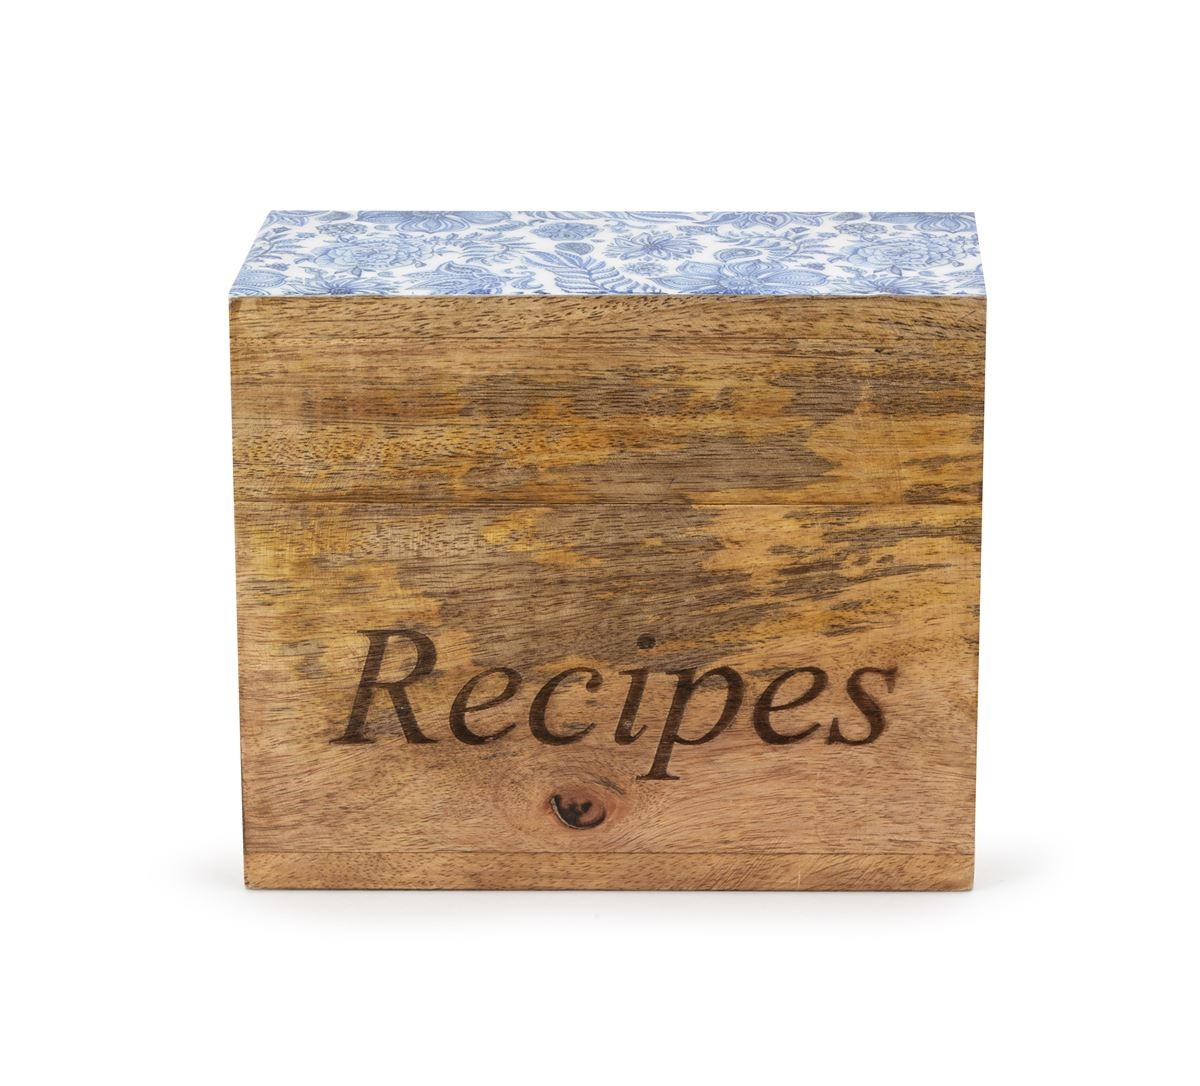 Wayfair Wetherell Blue and White Decal Wood Recipe Box, $34.99